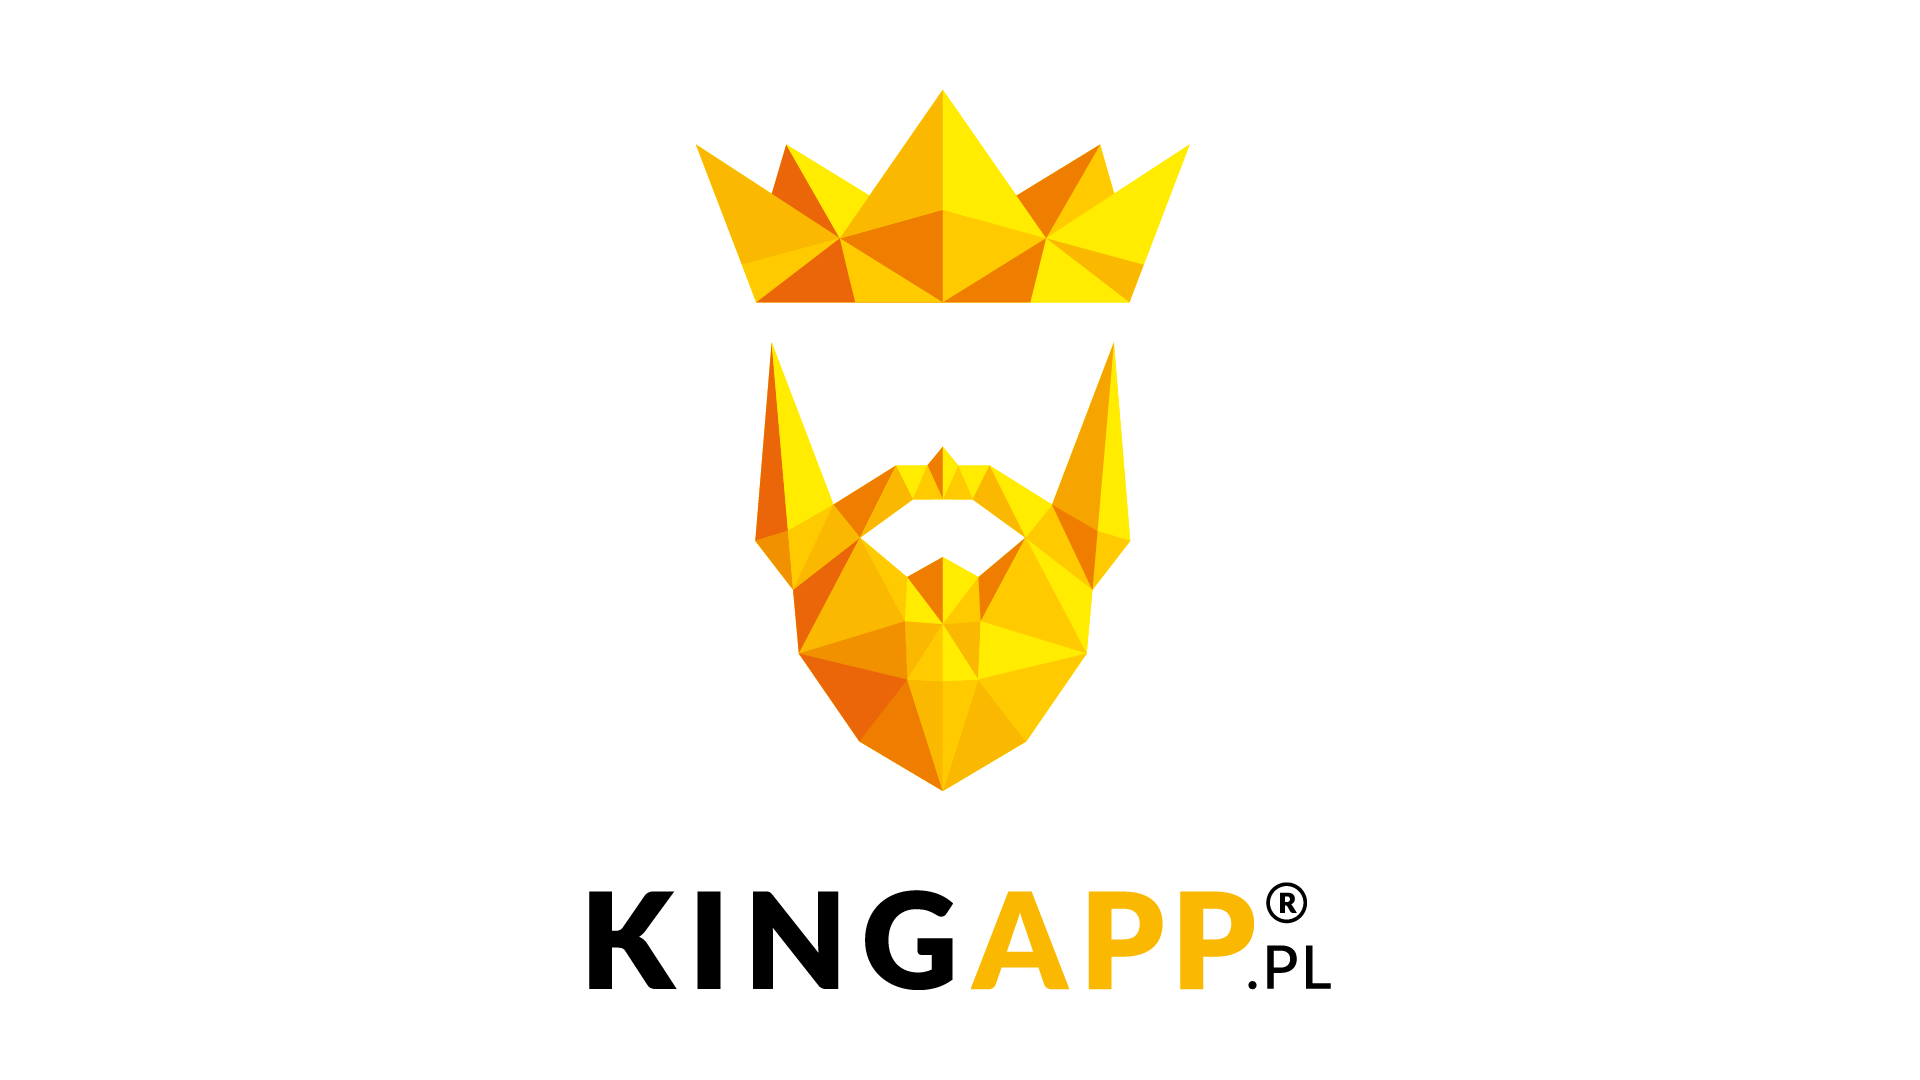 KINGAPP NEW